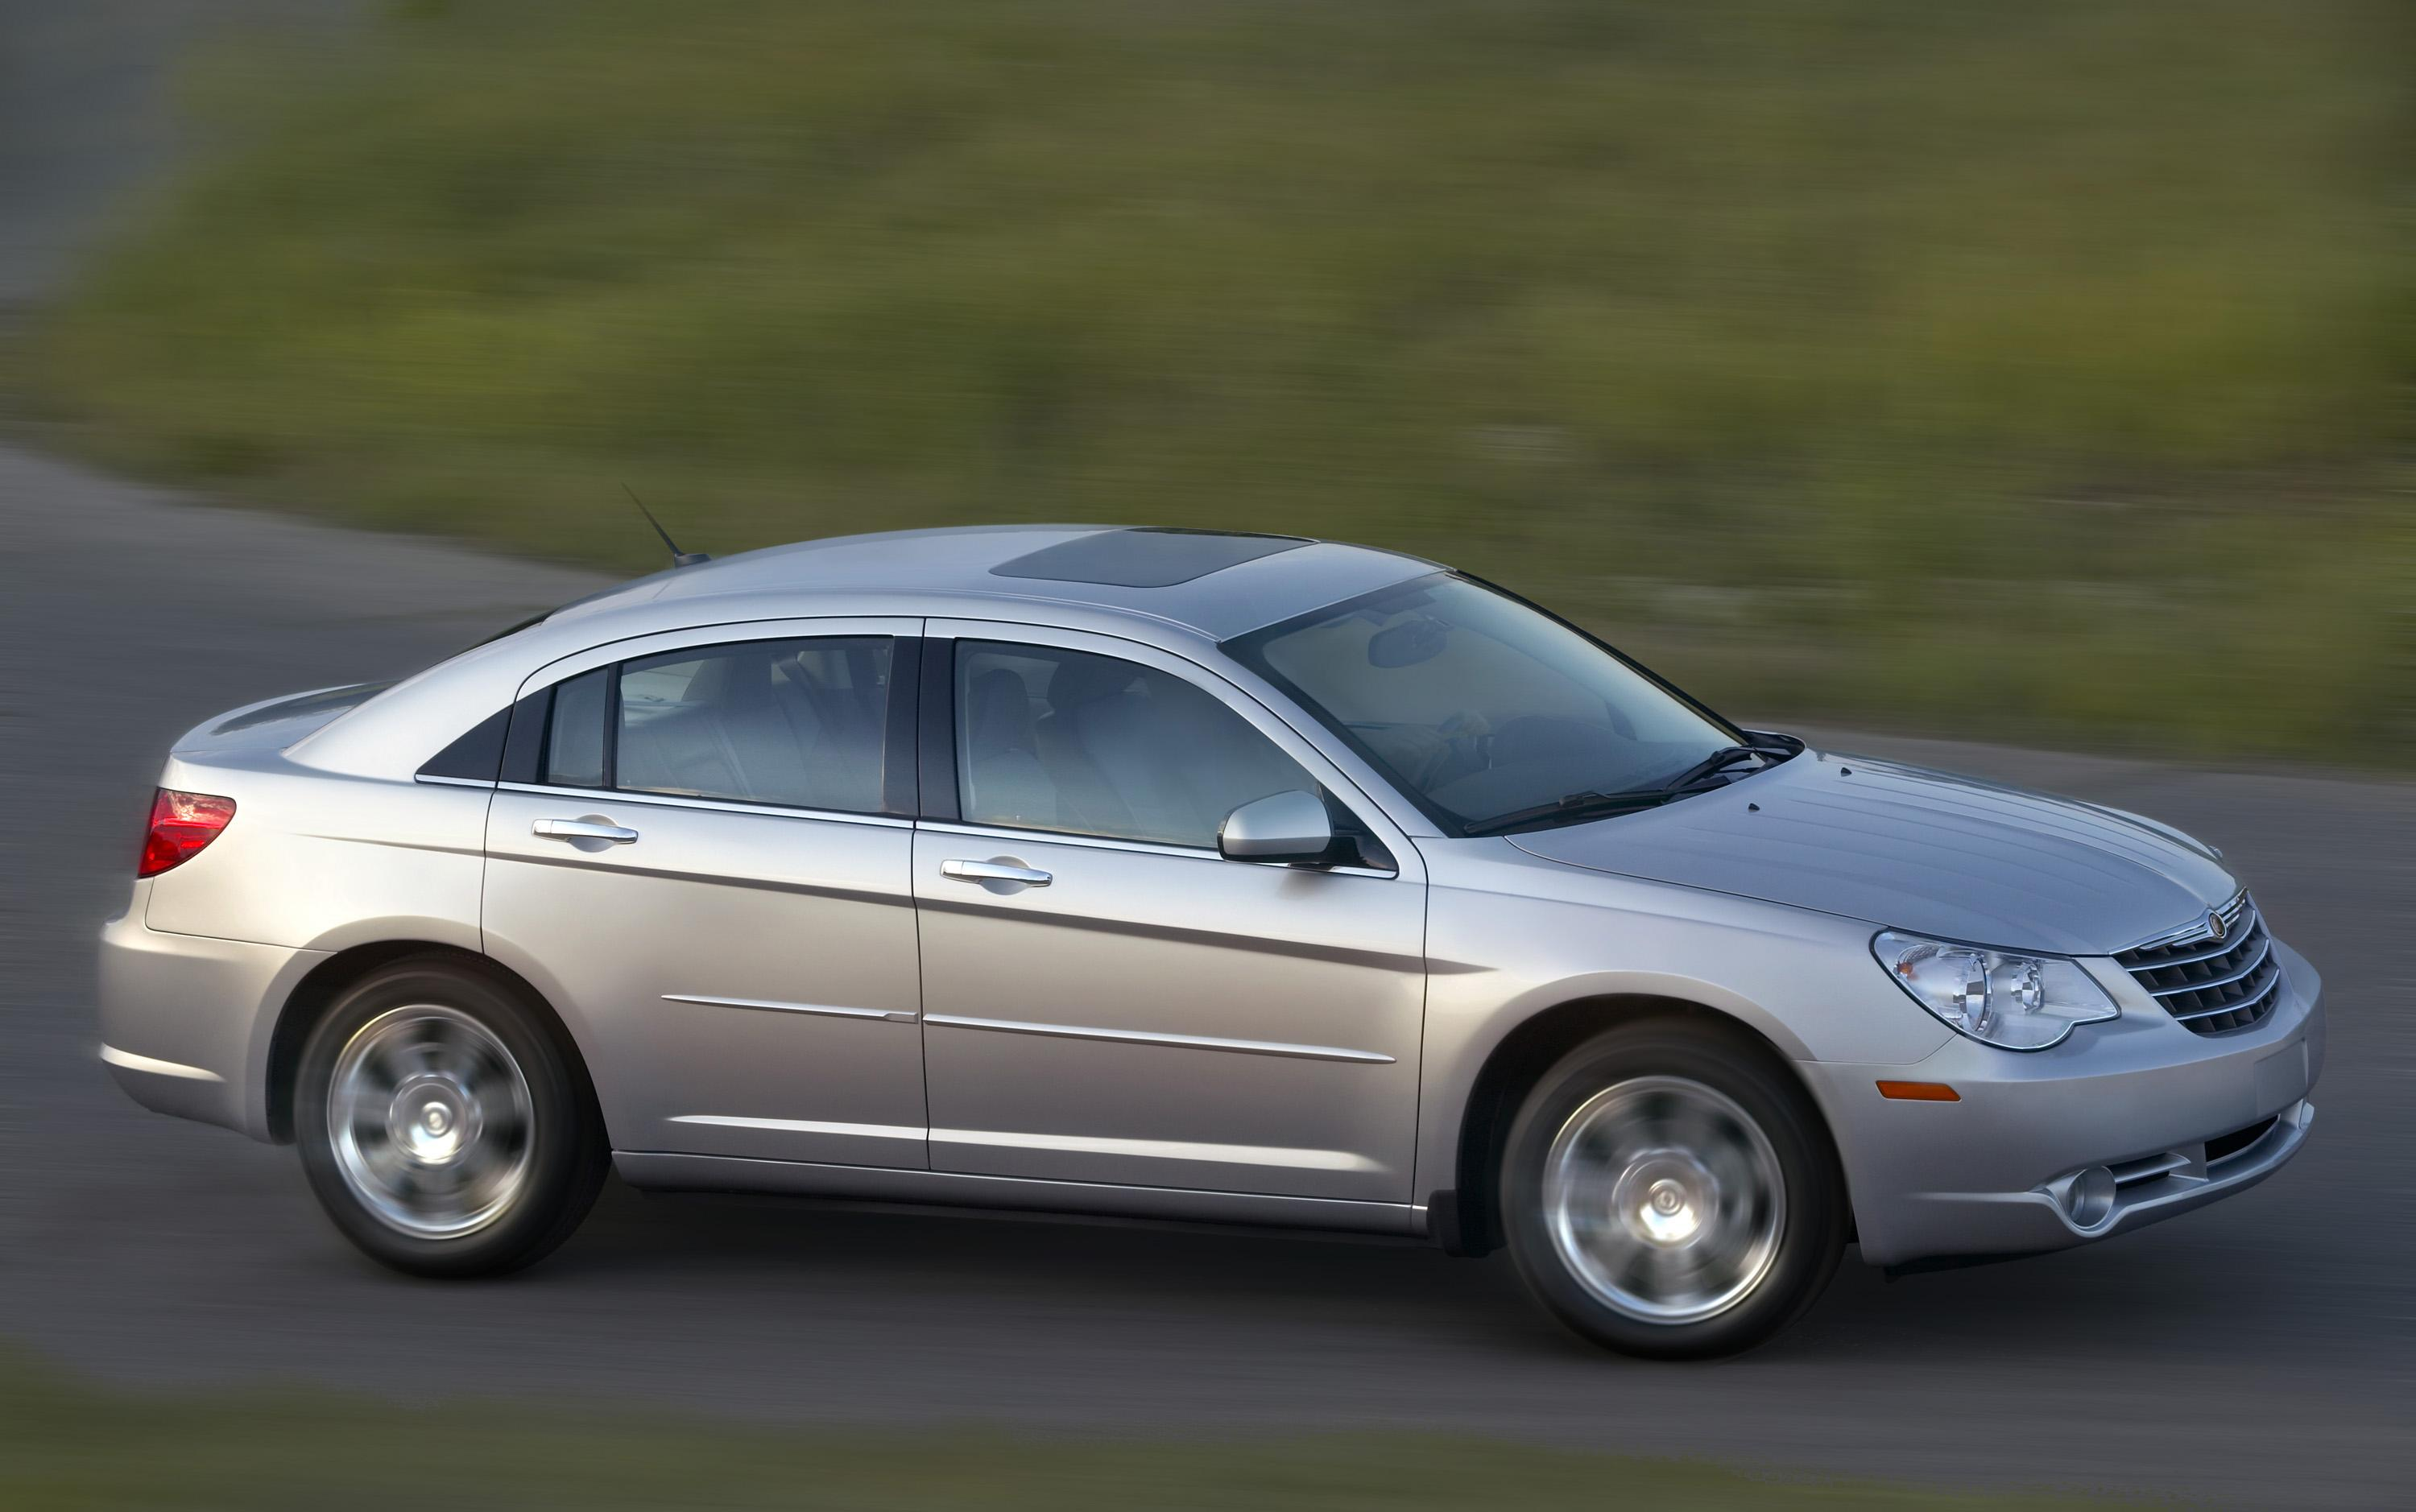 2007 chrysler sebring review top speed sciox Images